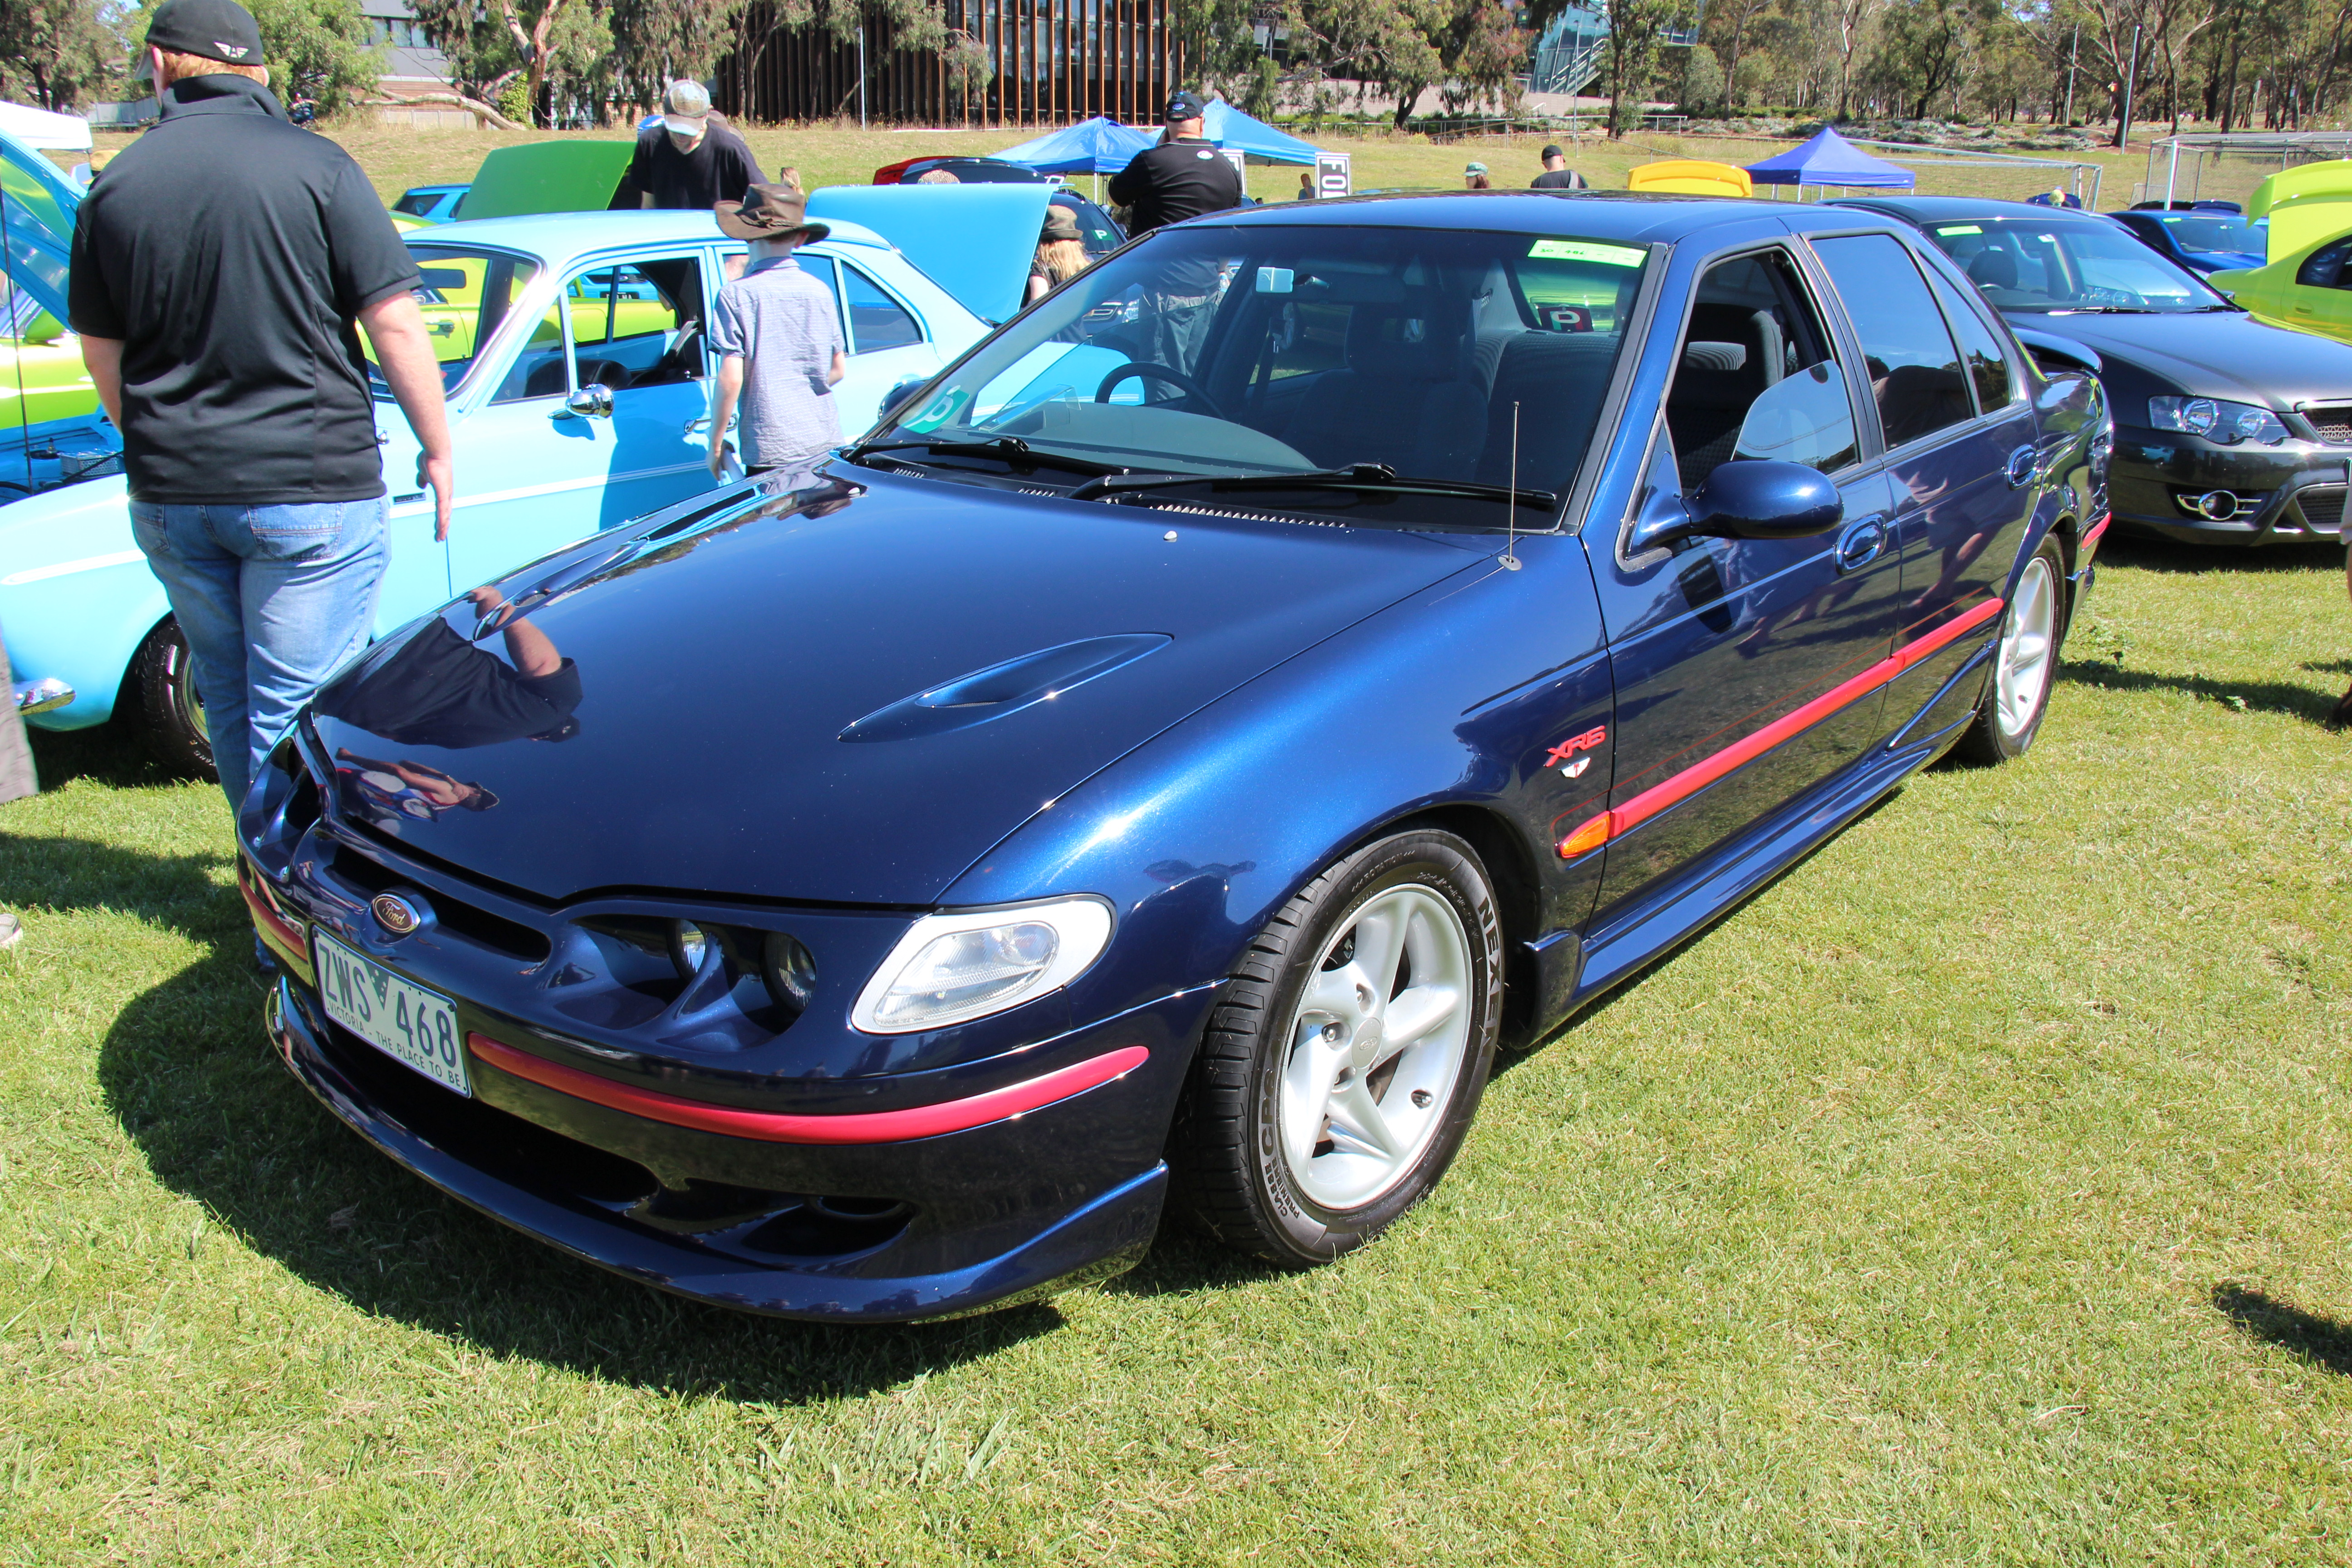 DNJ6CDE3QAL81Z54 together with Wallpaper 0f moreover File 1996 98 EL XR6 3D 3D as well Wallpaper 31 besides Wallpaper 07. on ford xr falcon